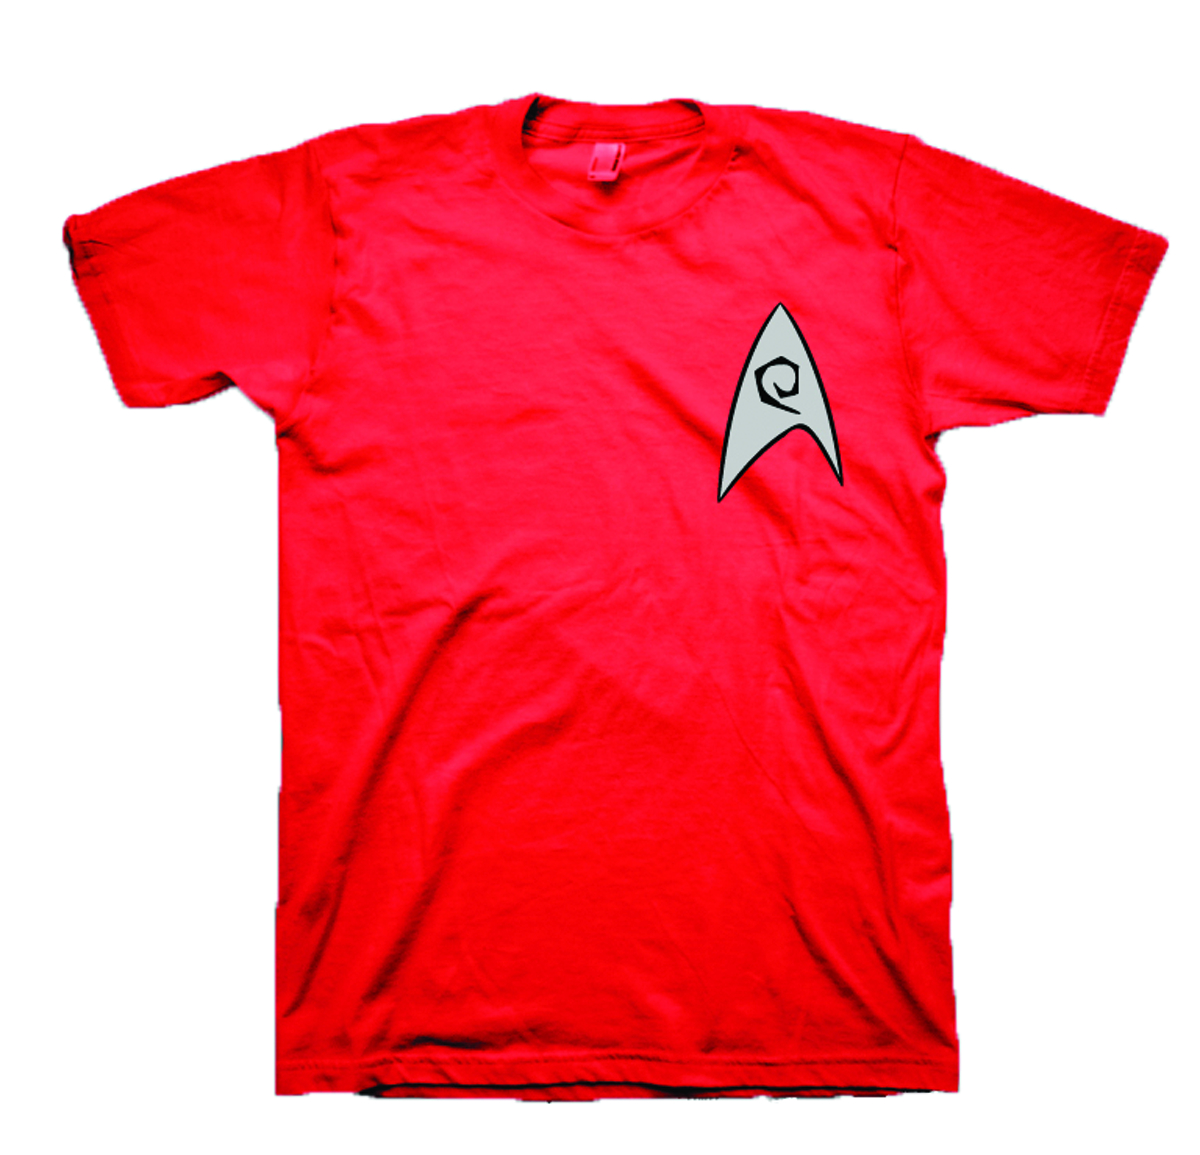 STAR TREK RED SHIRT COSTUME T/S MED